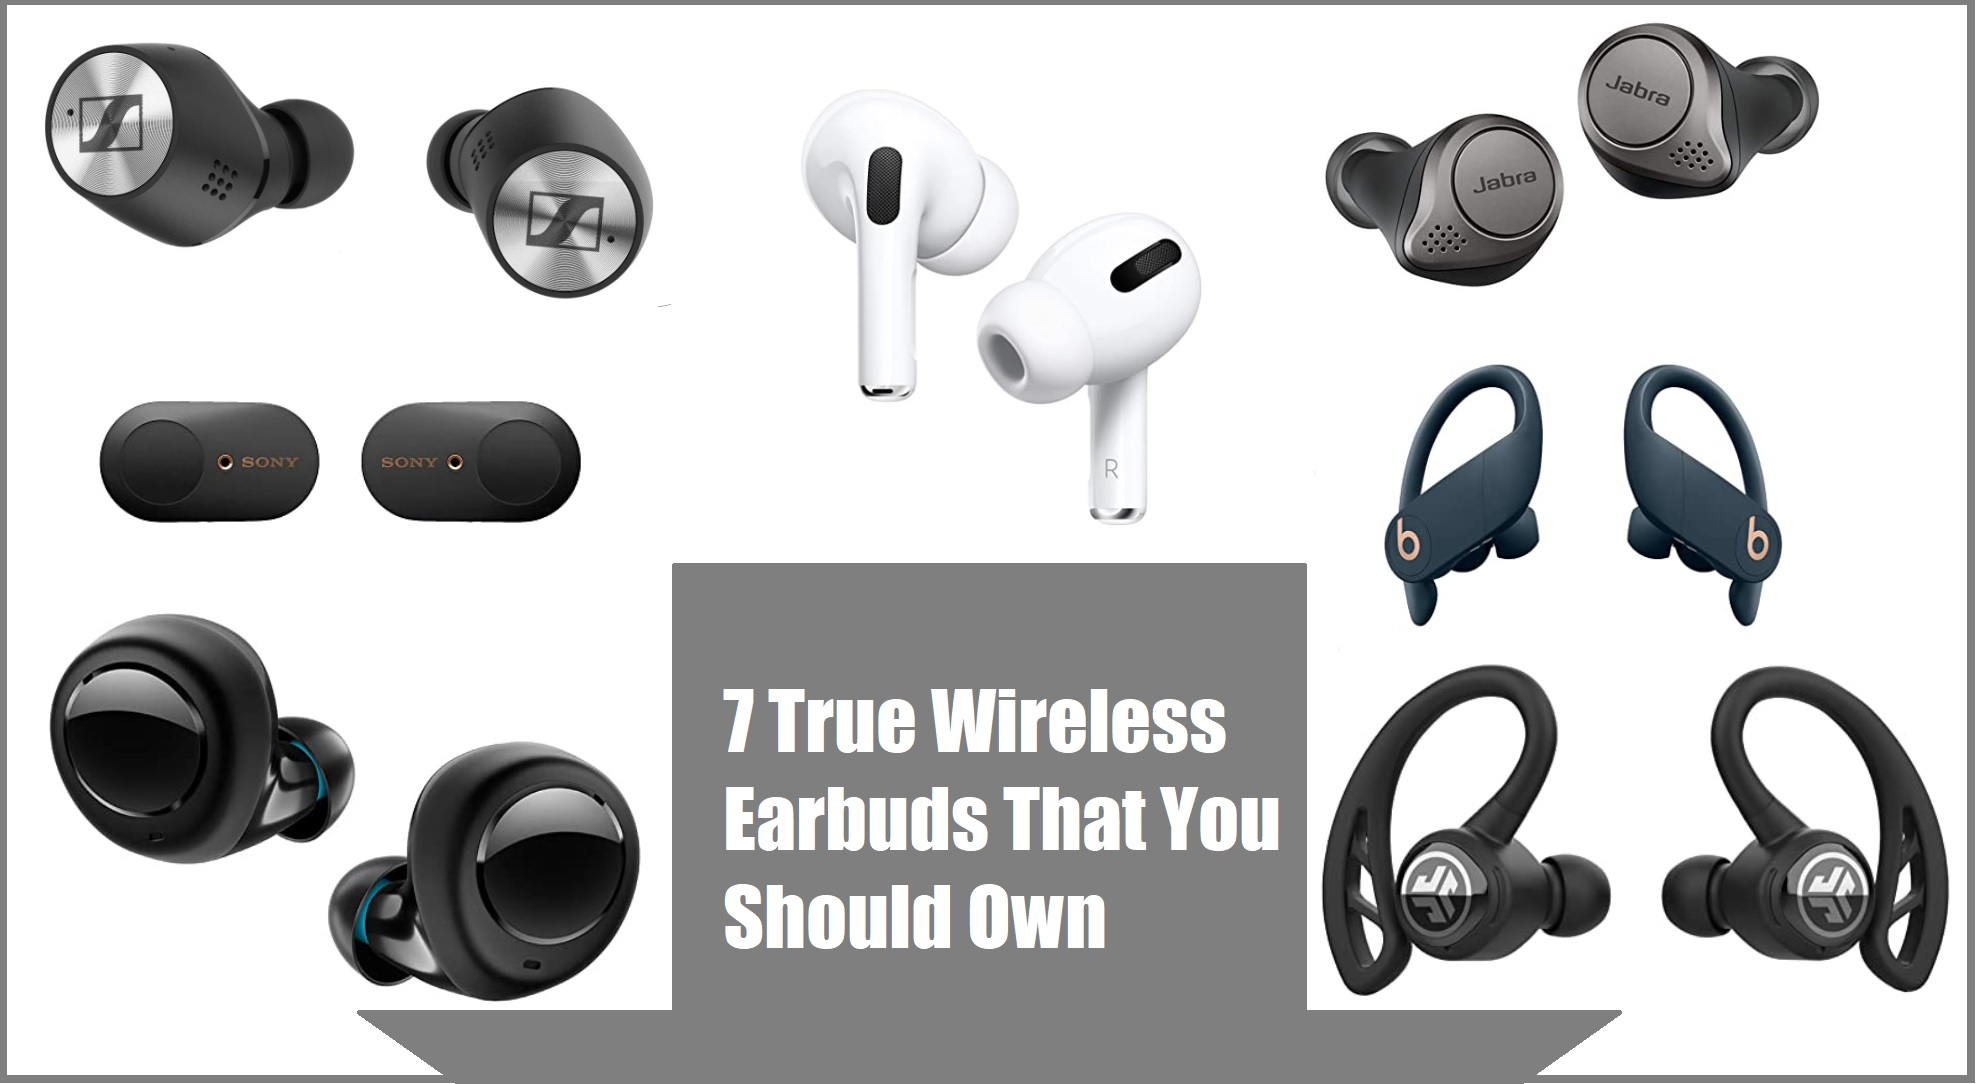 7 True Wireless Earbuds That You Should Own